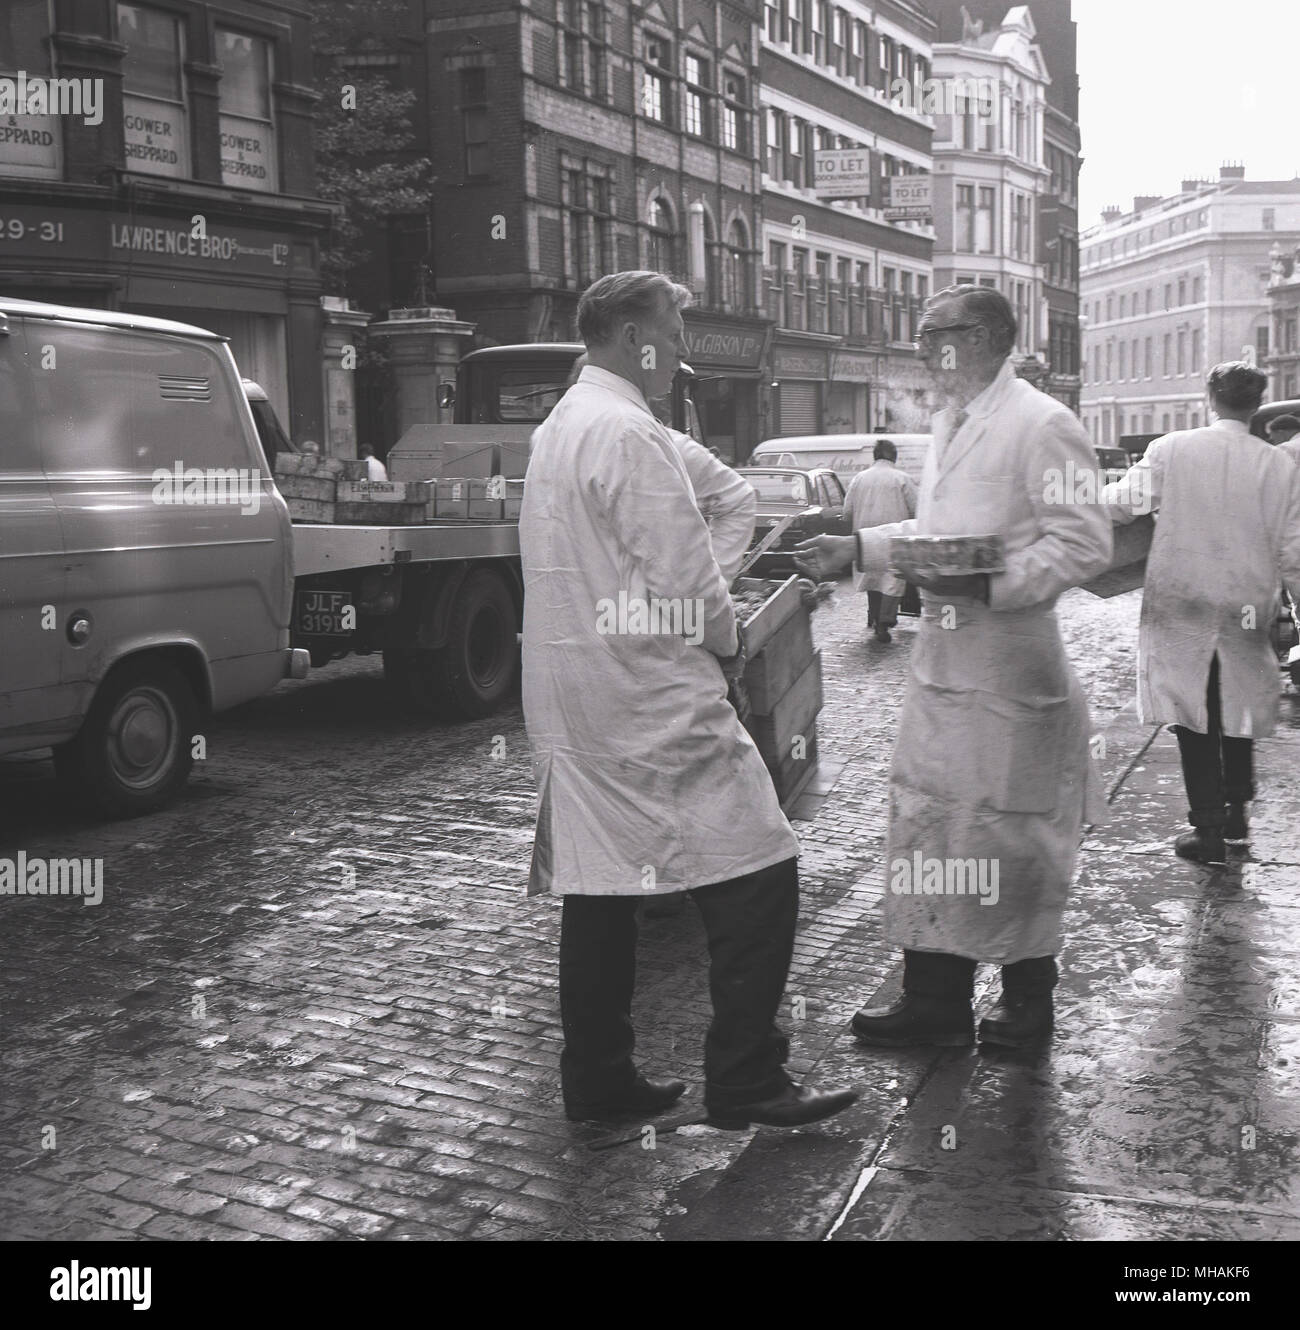 1950s, historical, two fish merchants in overalls stand chatting on a cobbled street outside the Billingsgate wholesale fish market, Lonond, England, UK. - Stock Image